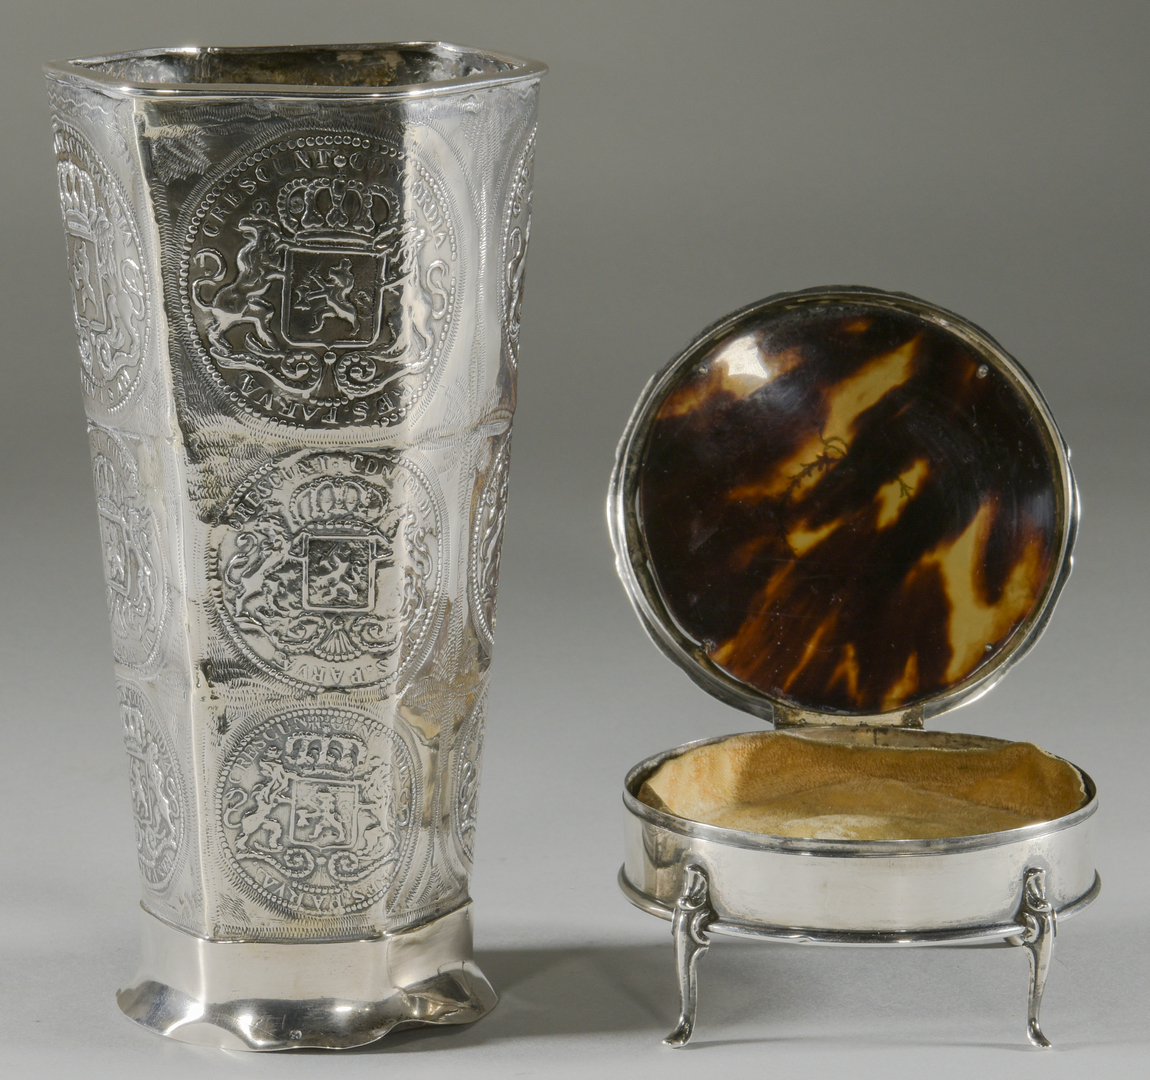 Lot 898 10 Silver Items Inc Vase